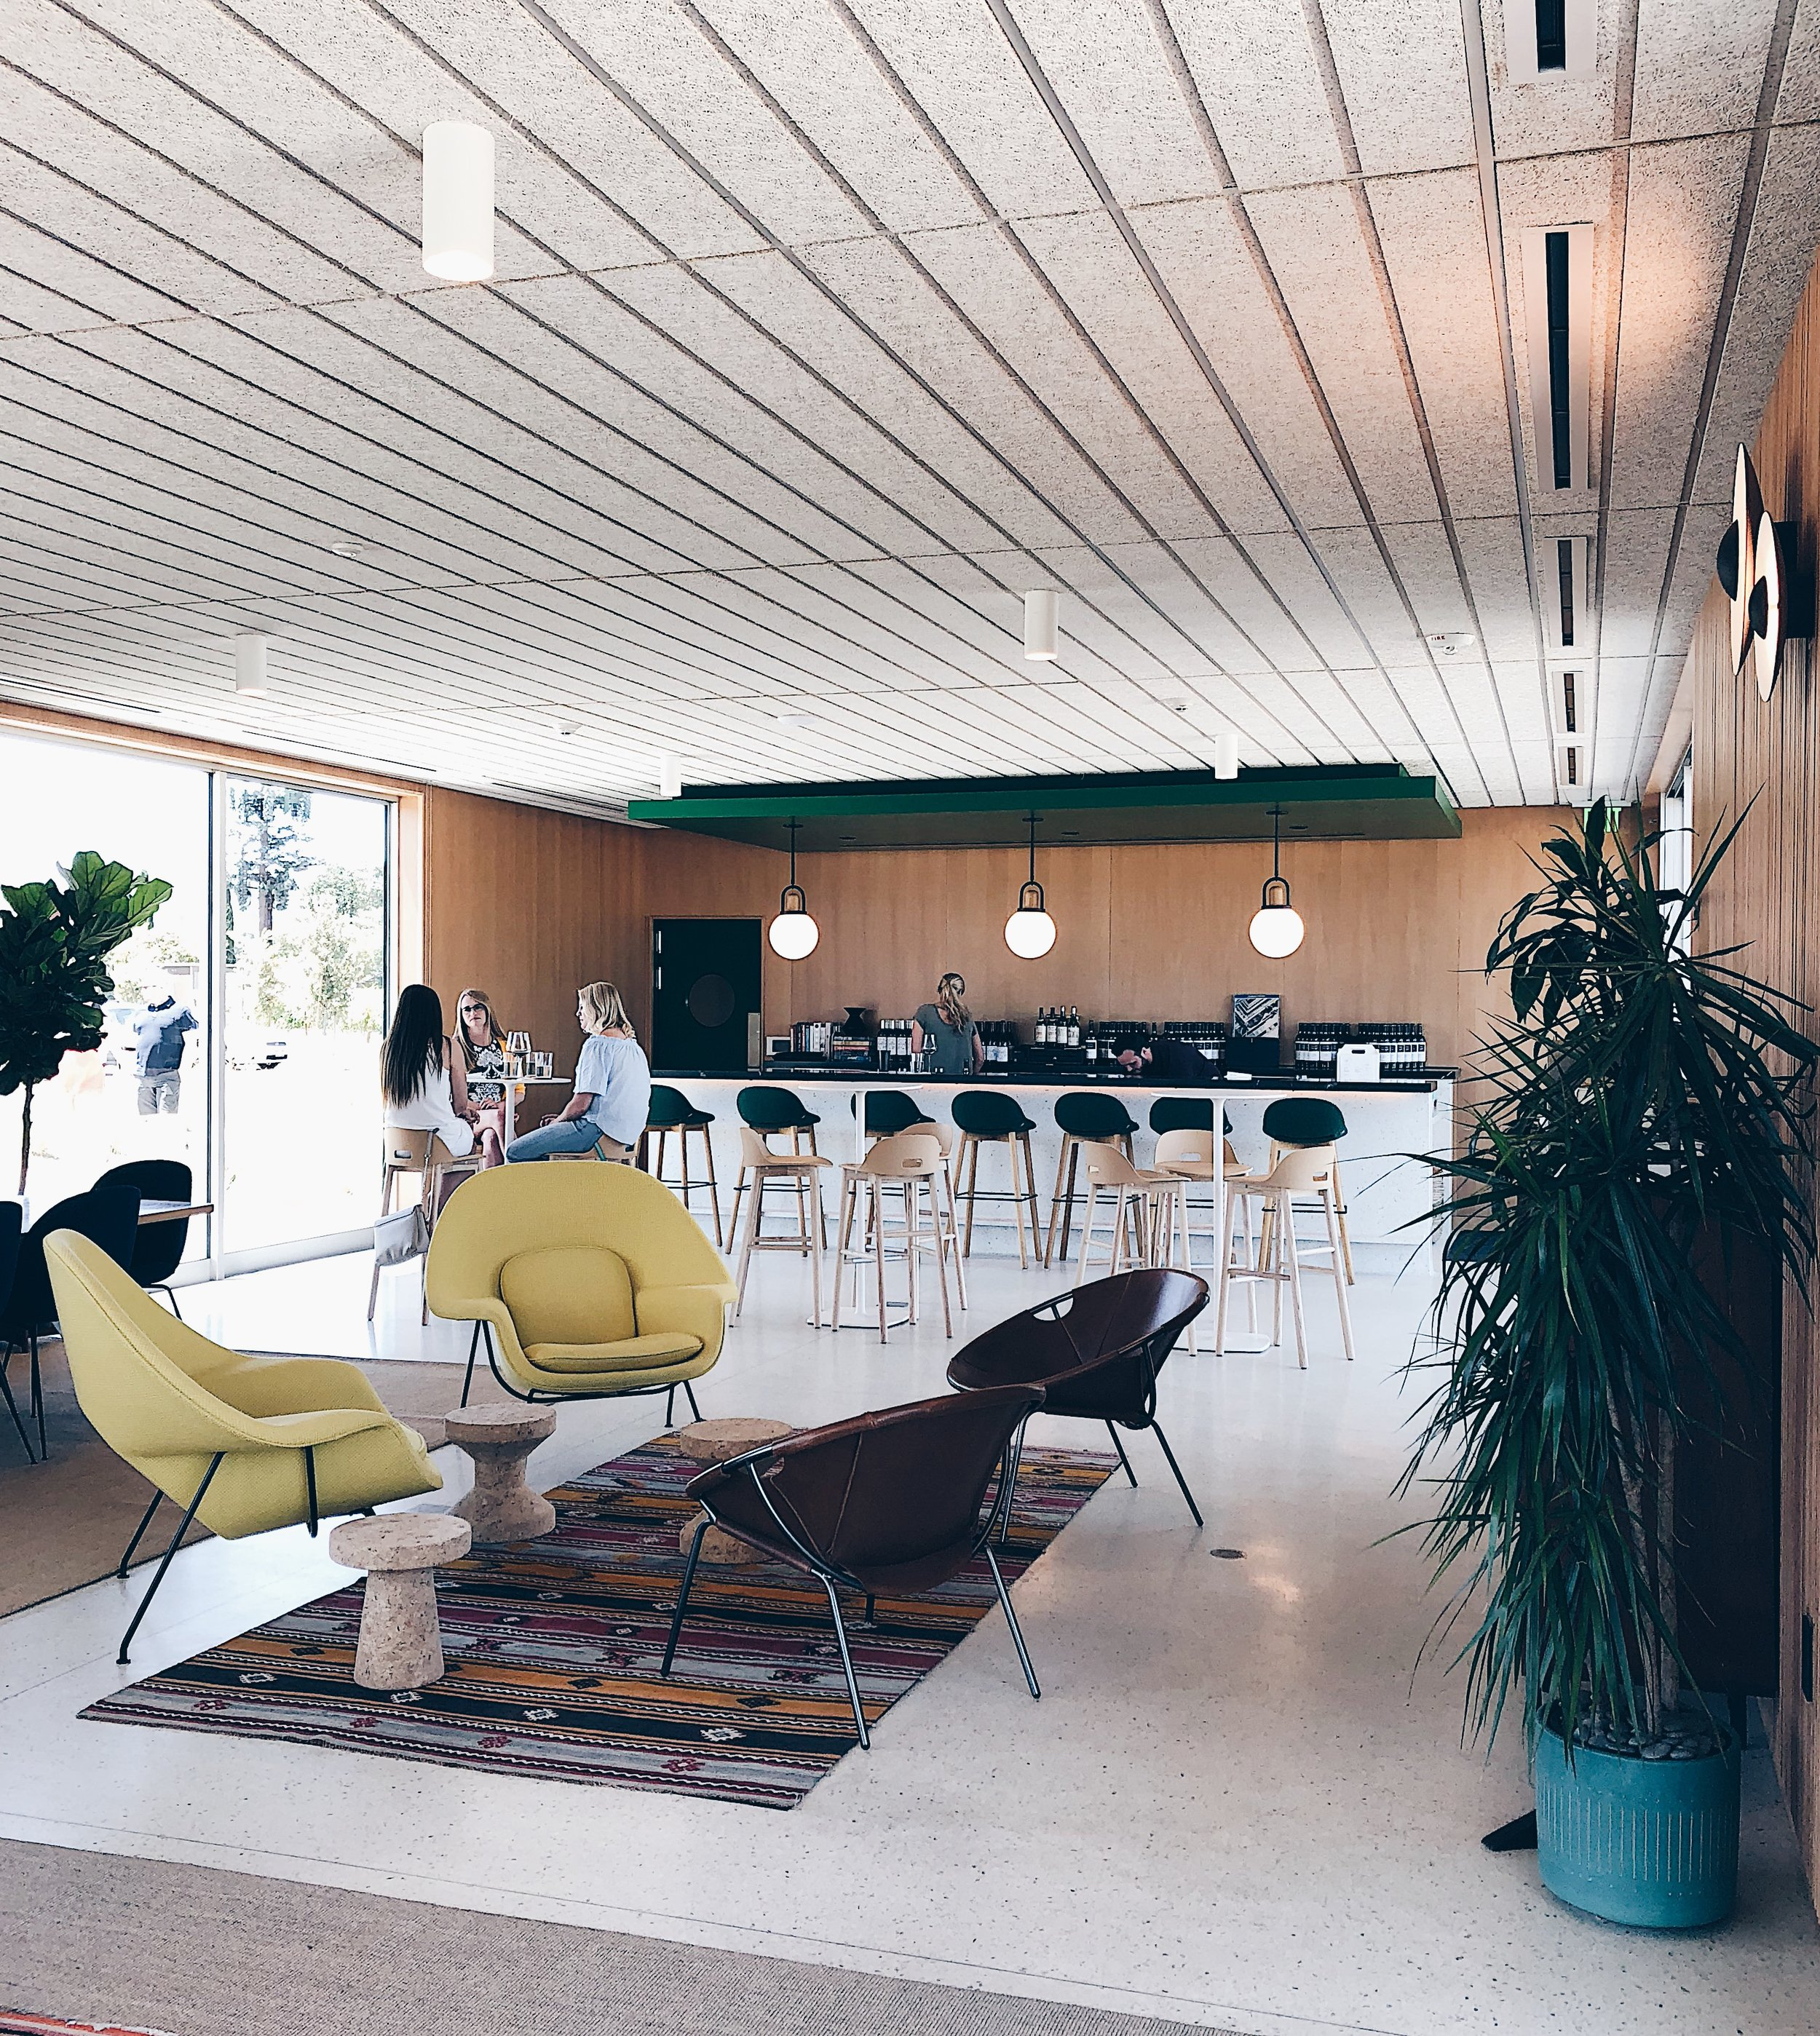 Ashes & Diamonds Winery - an amazing mid-century modern space